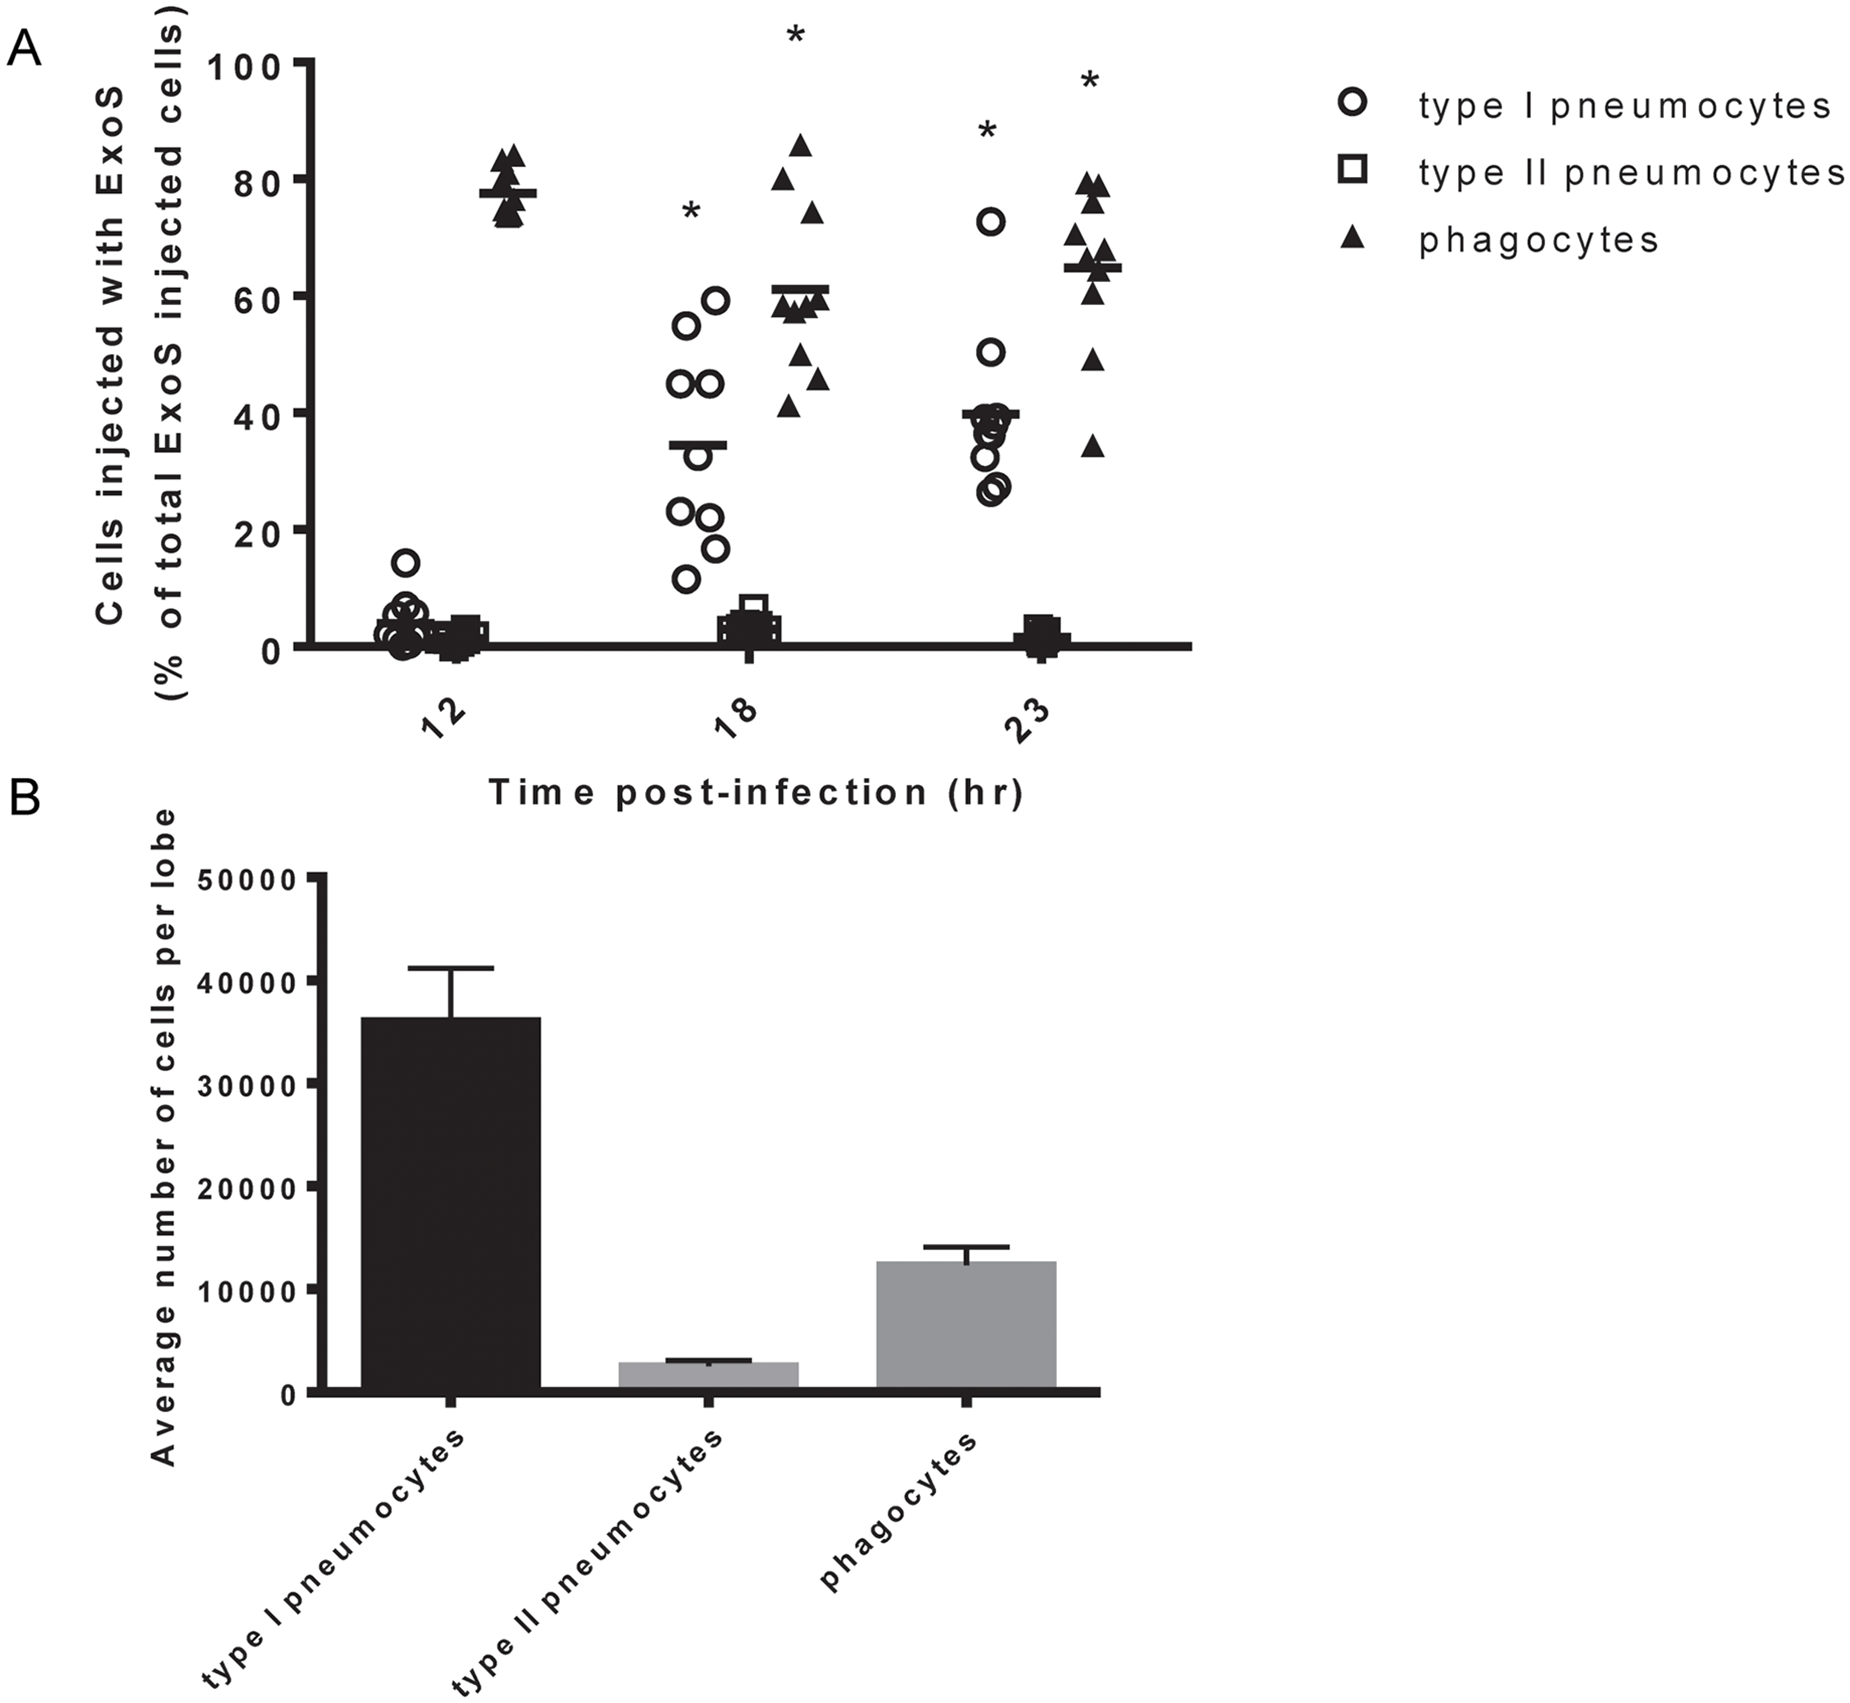 Type I pneumocytes comprise an increasing proportion of injected cells over time during pneumonia.